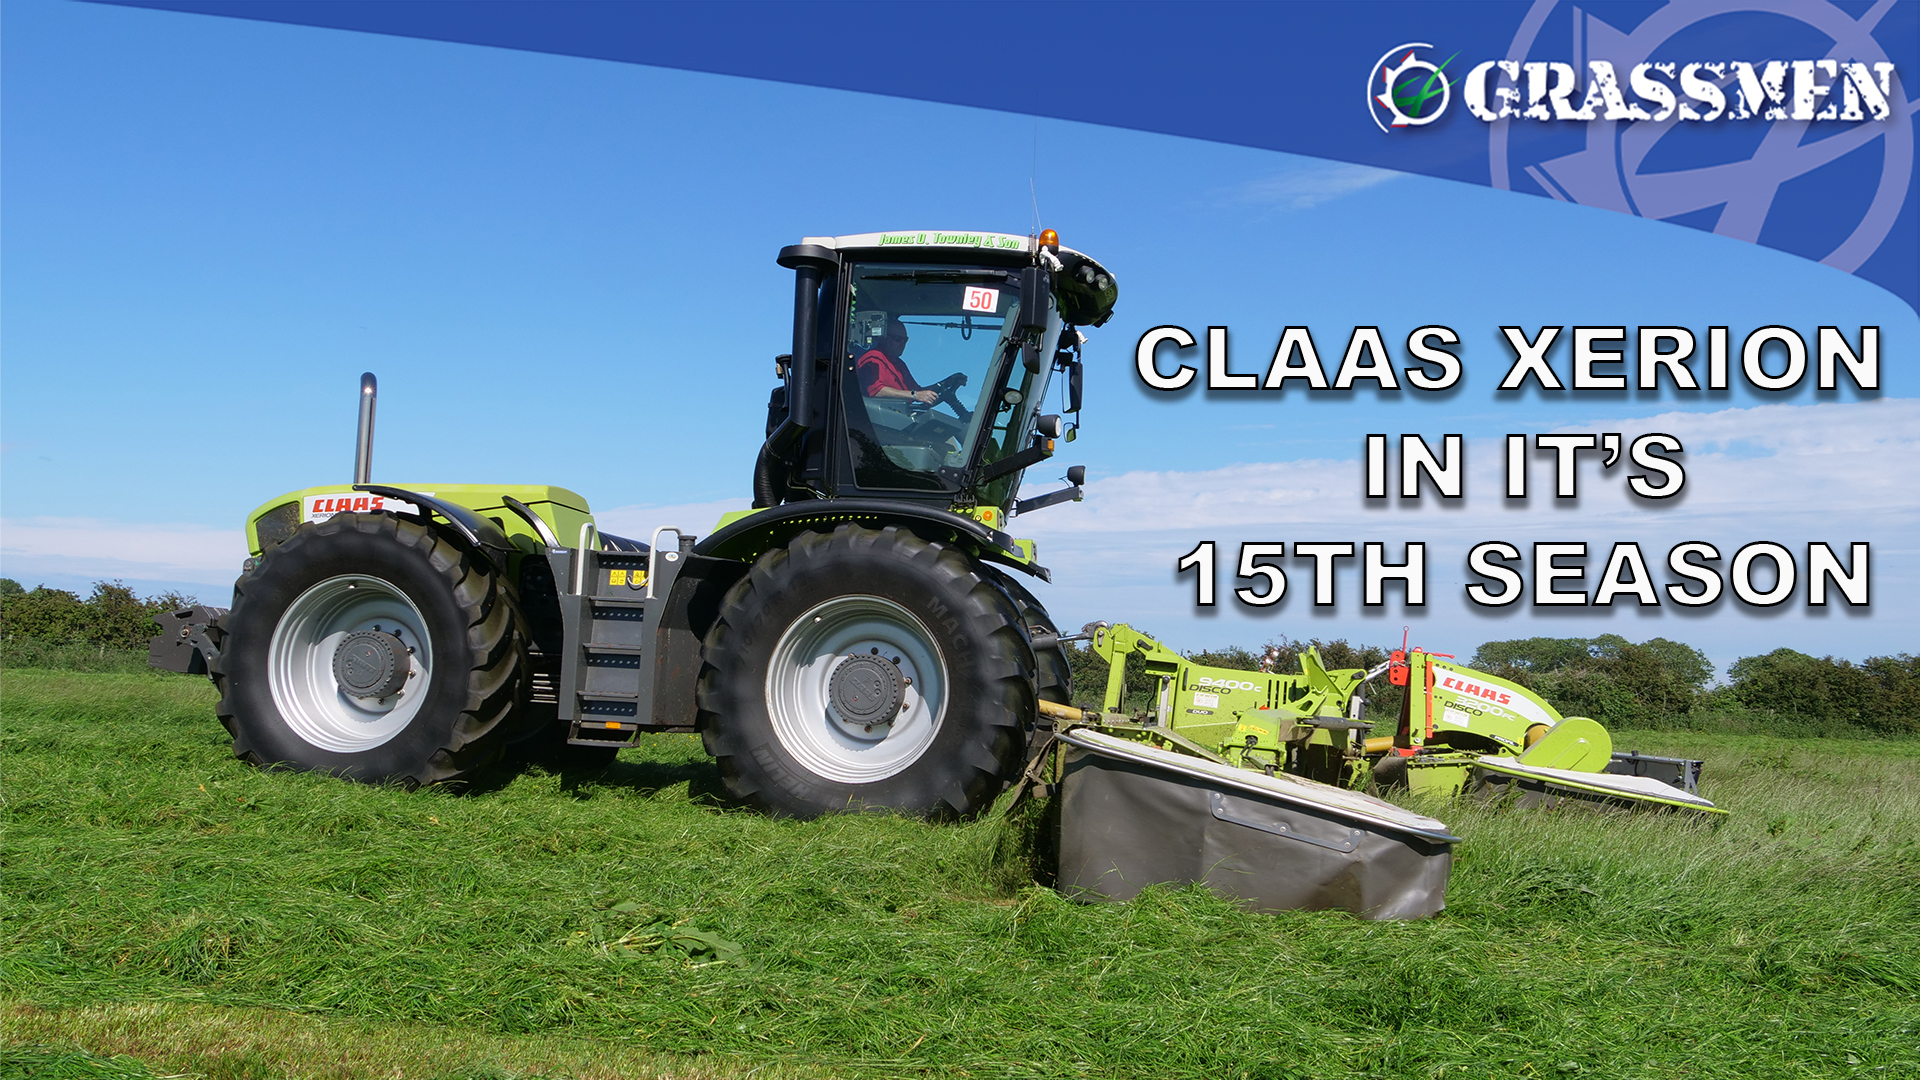 Claas Xerion in its 15th season